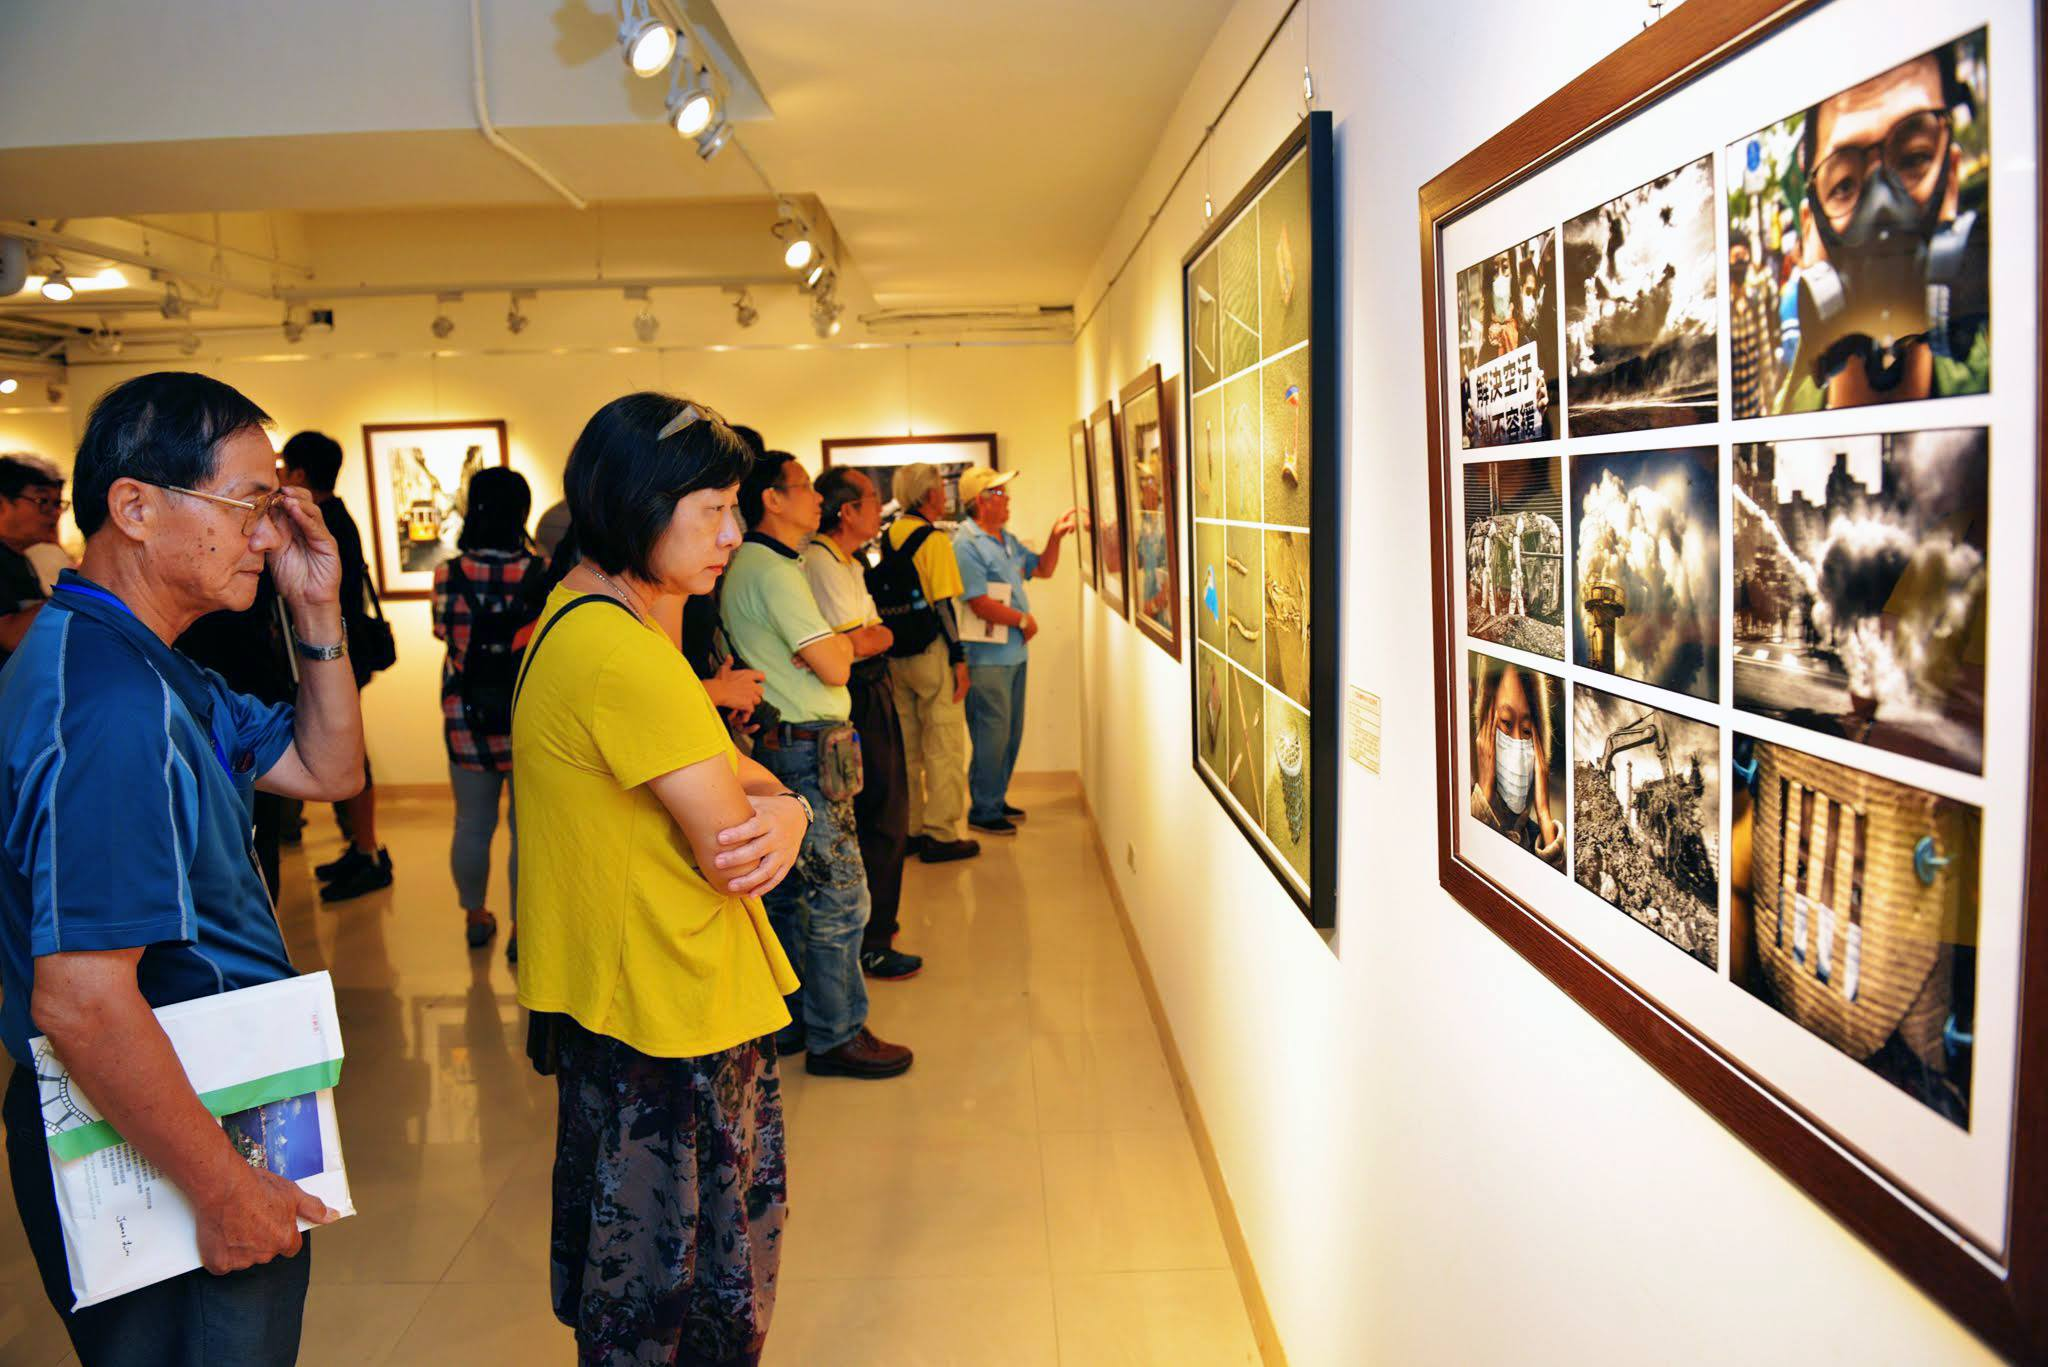 Internationalen Fotoausstellung in der Millionenstadt Kaohsiung im Süden der Republik China (Taiwan)